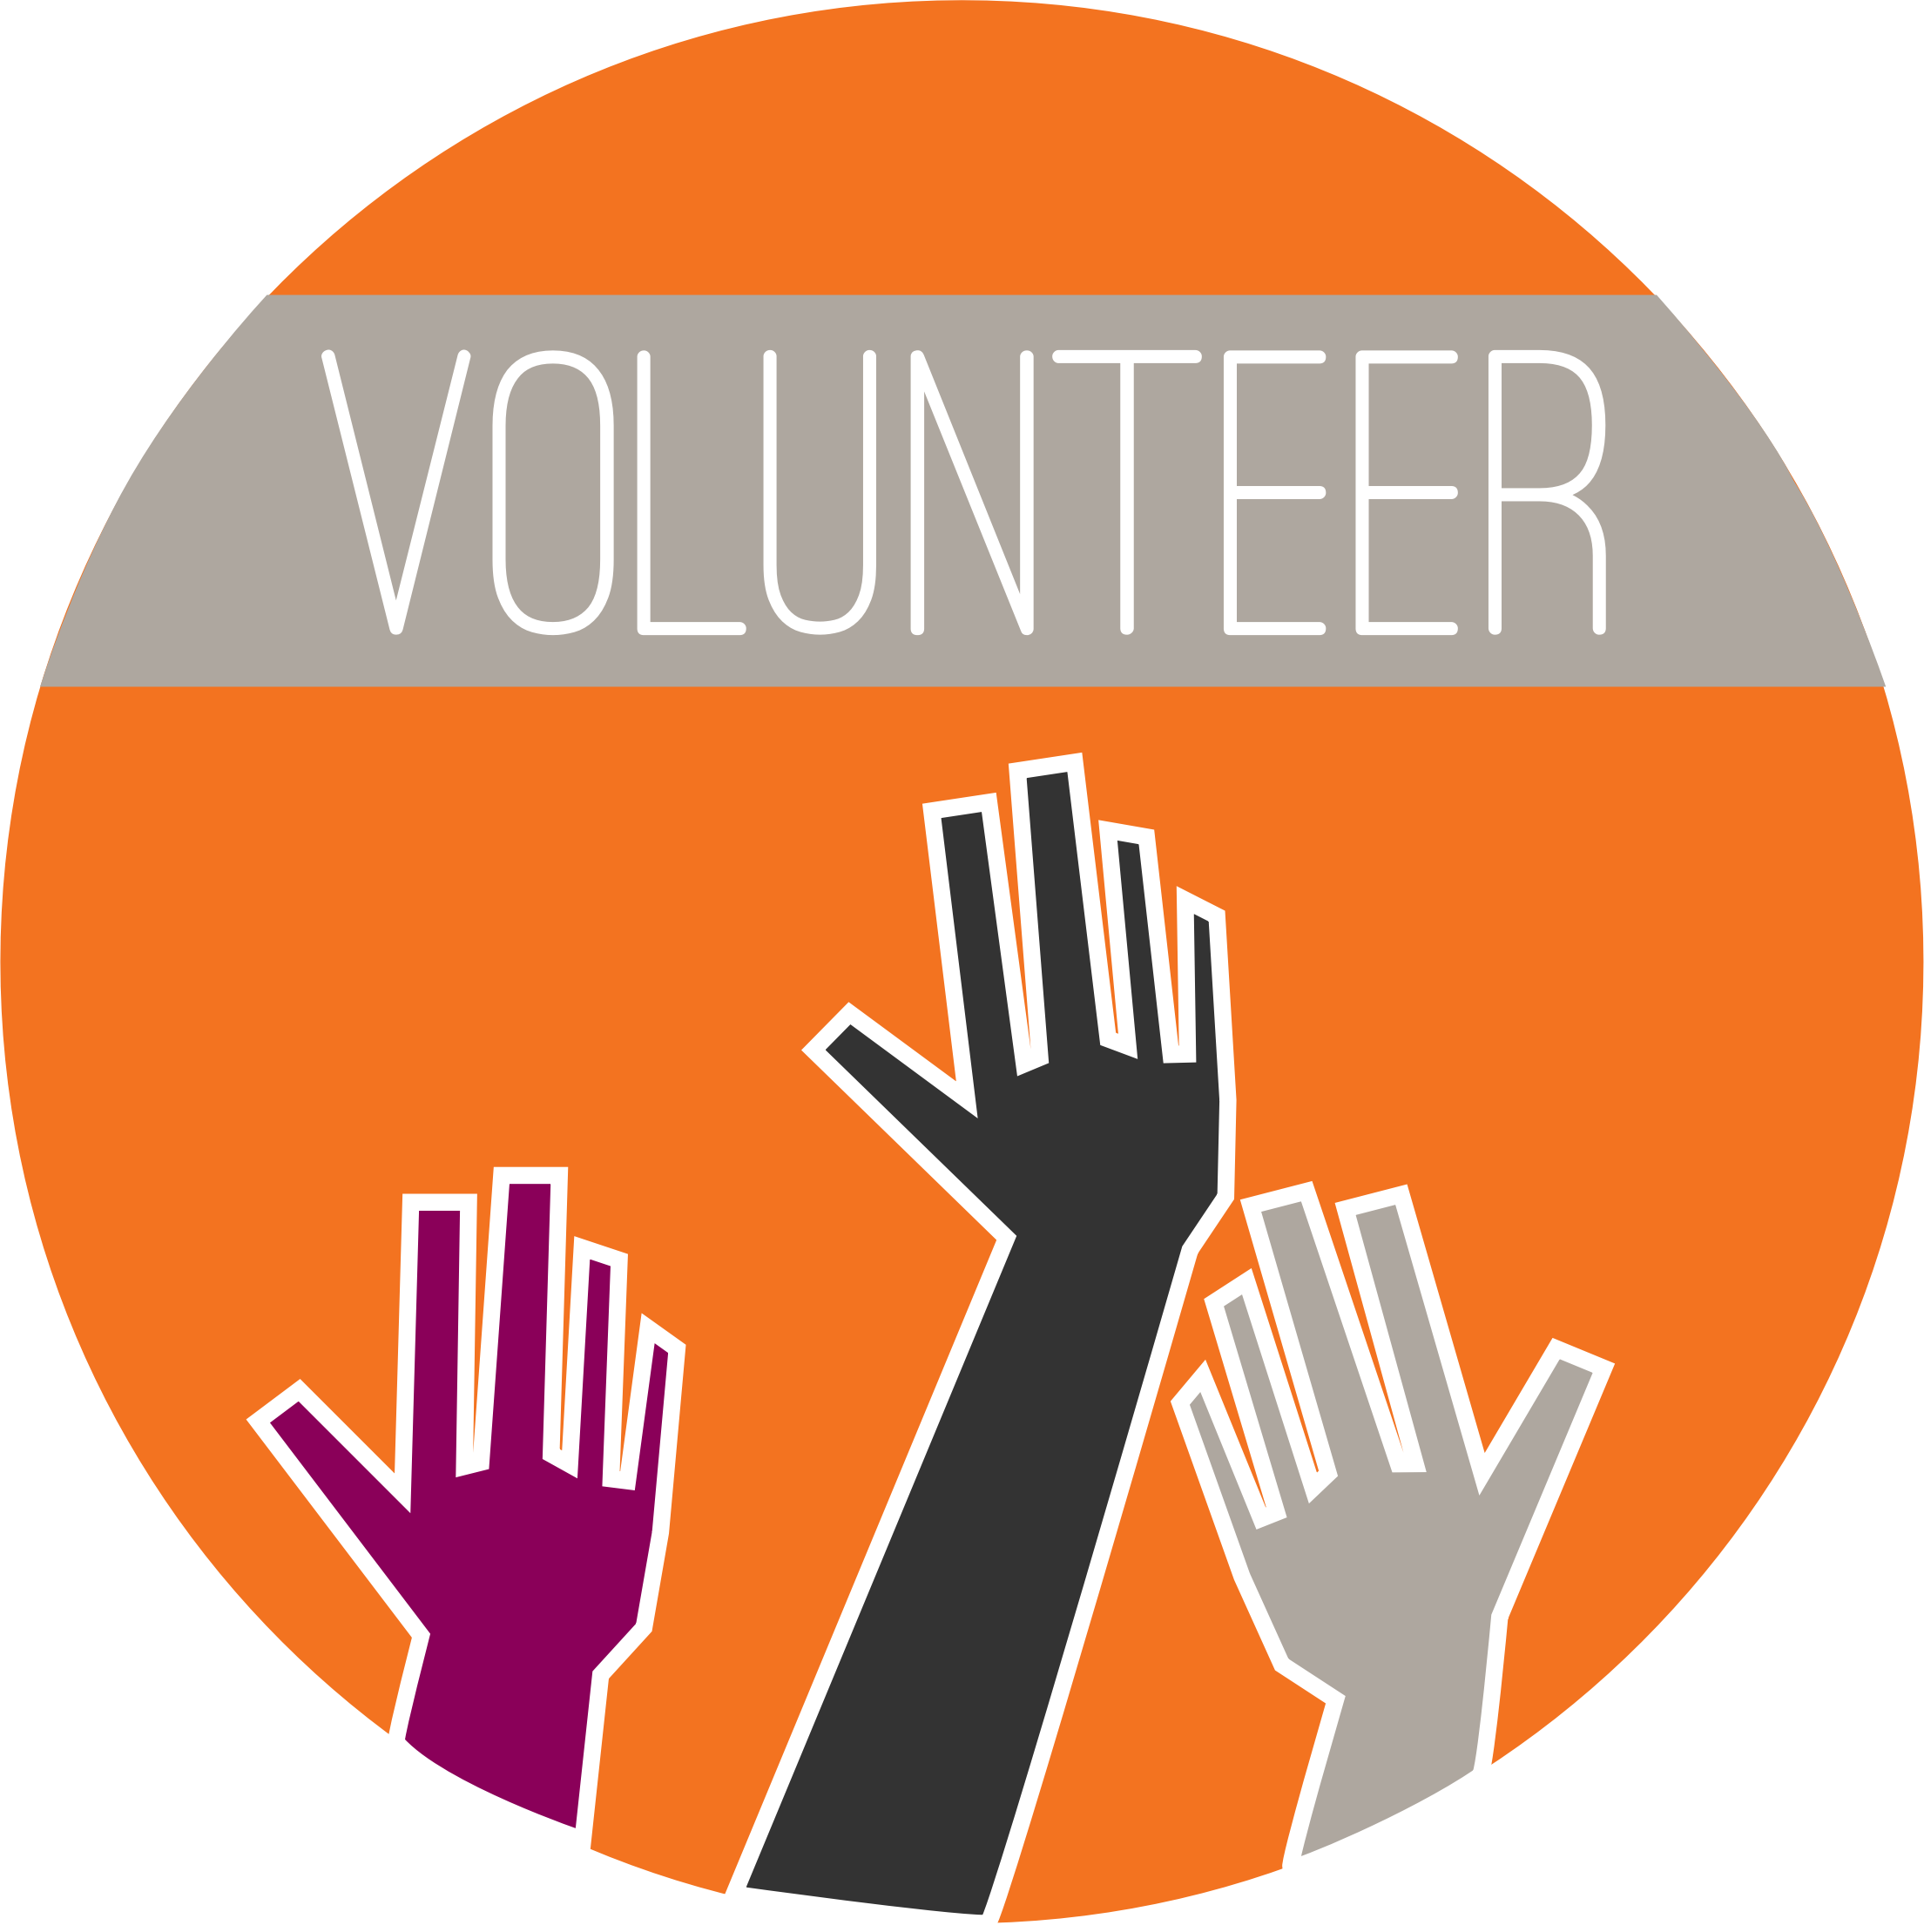 Volunteering Round Logo by yleventhal